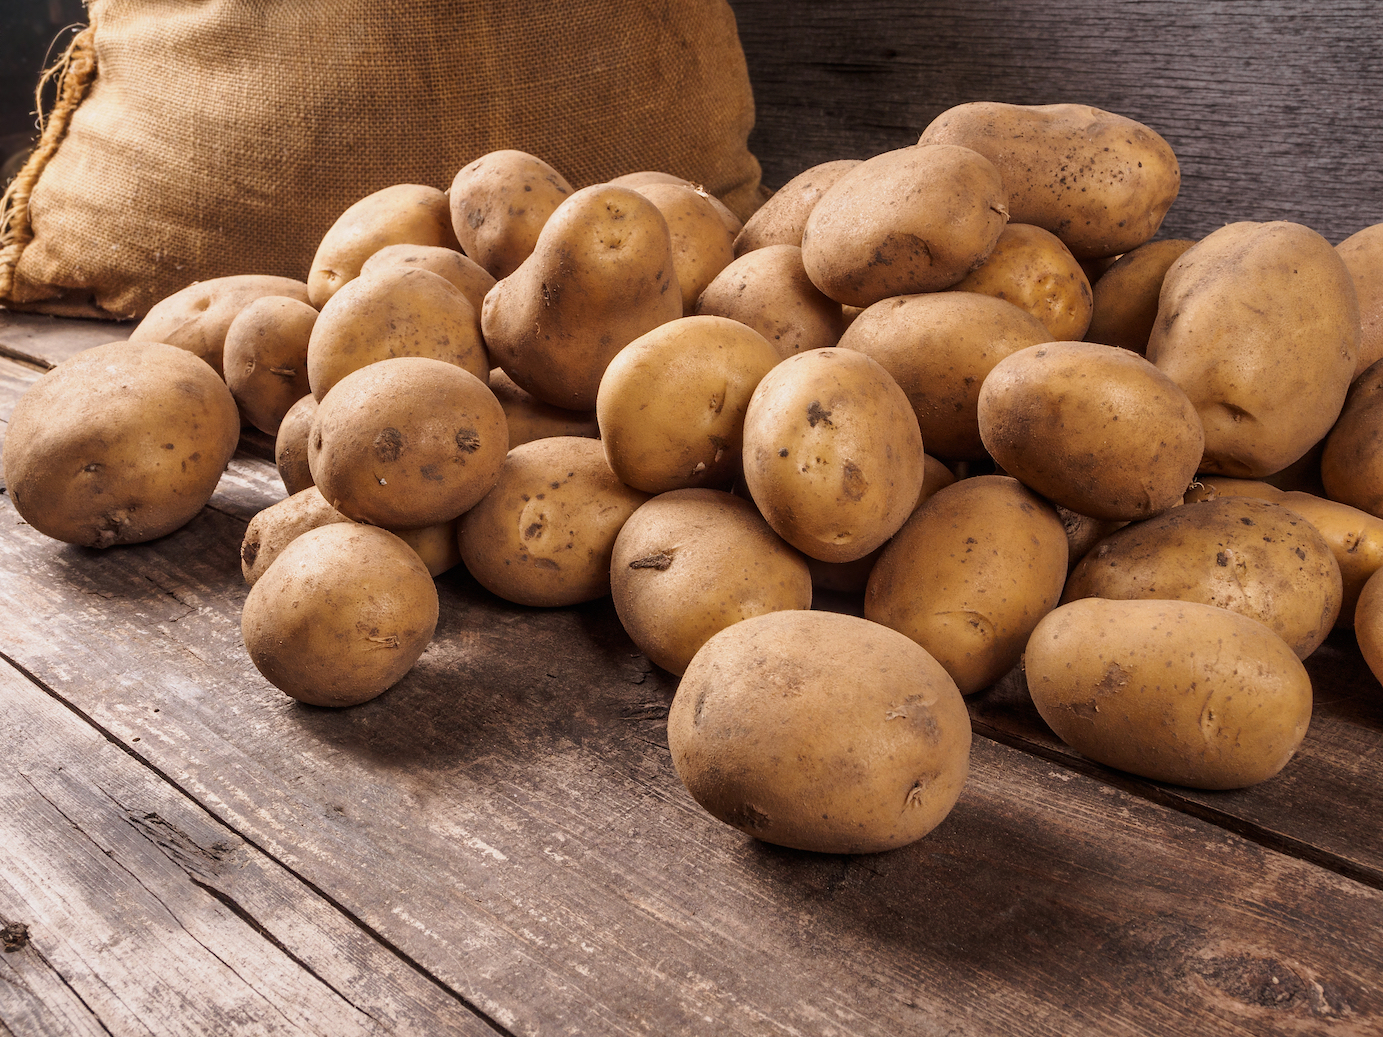 According to a new report, the introduction of potatoes helped reduce conflict in Europe for a minimum for 200 years.